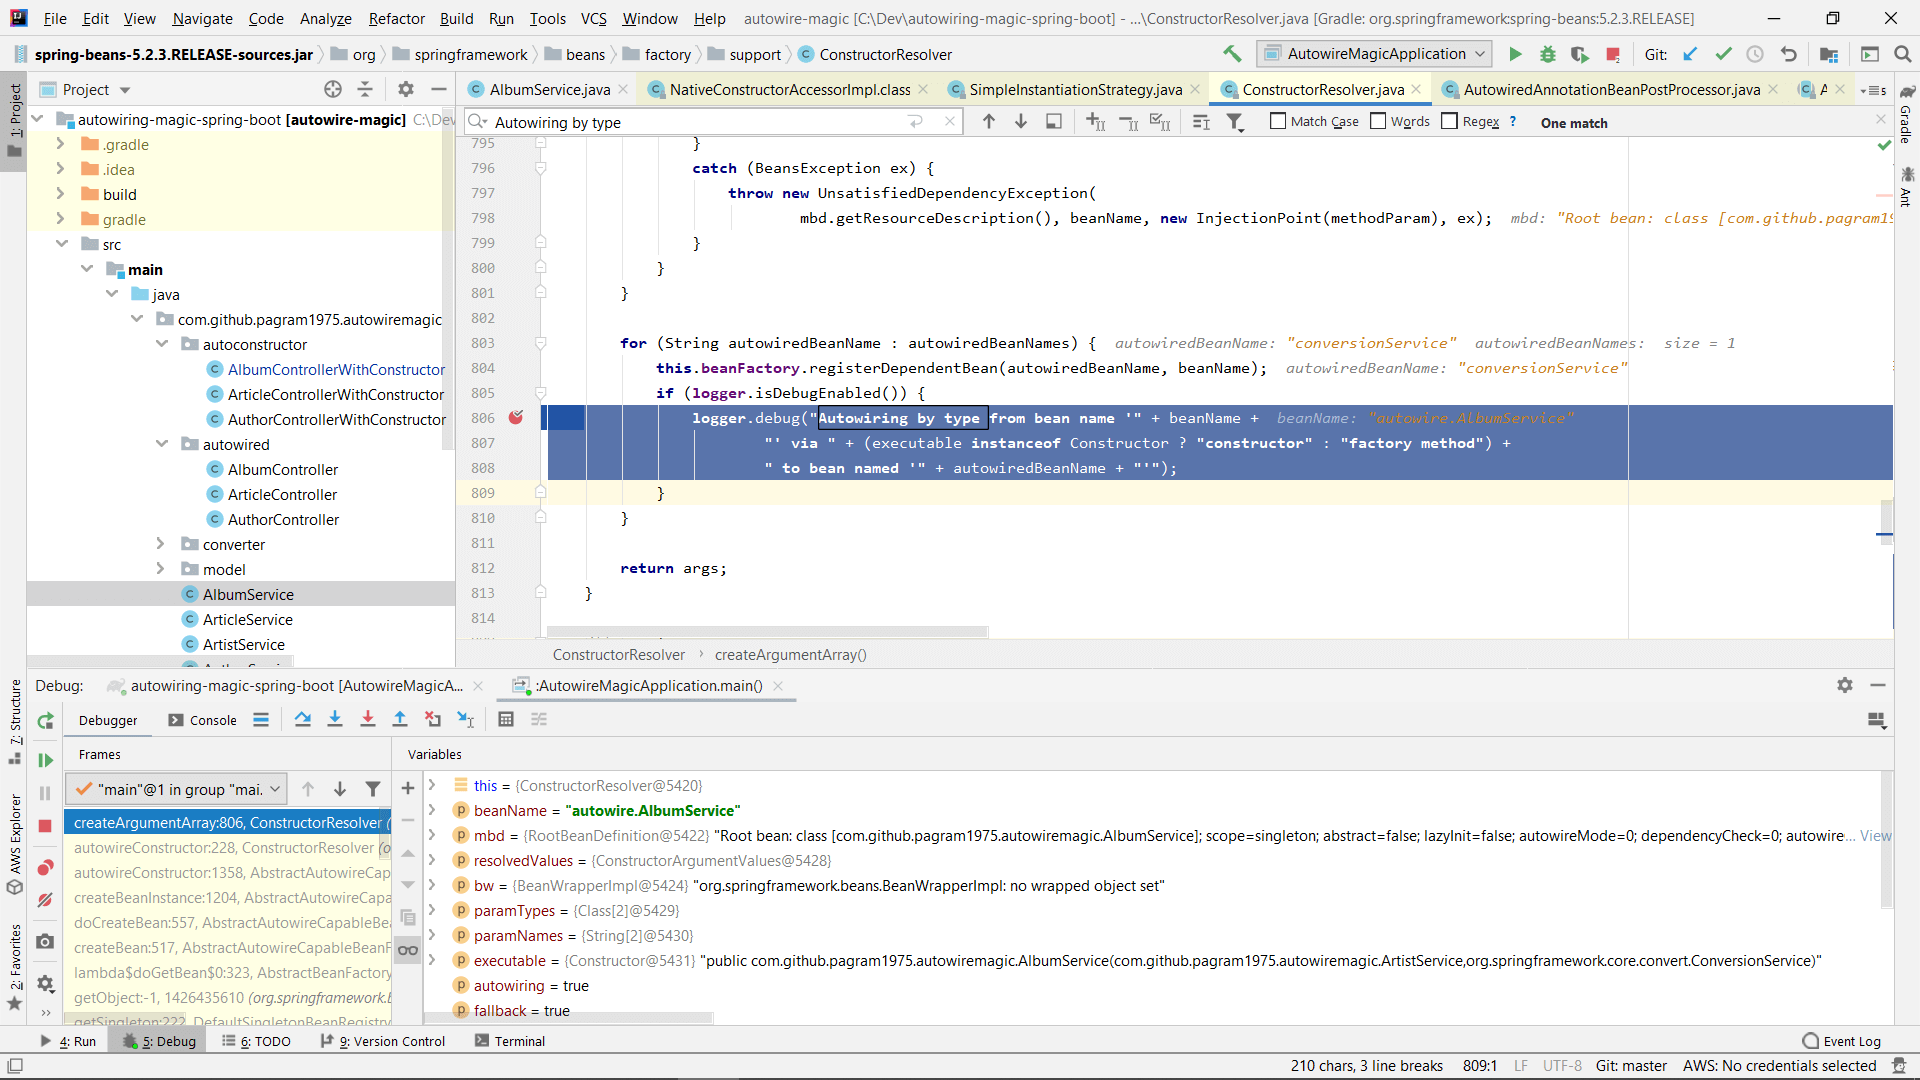 Debugging Spring in IntelliJ Idea to see how the constructor arguments are resolved